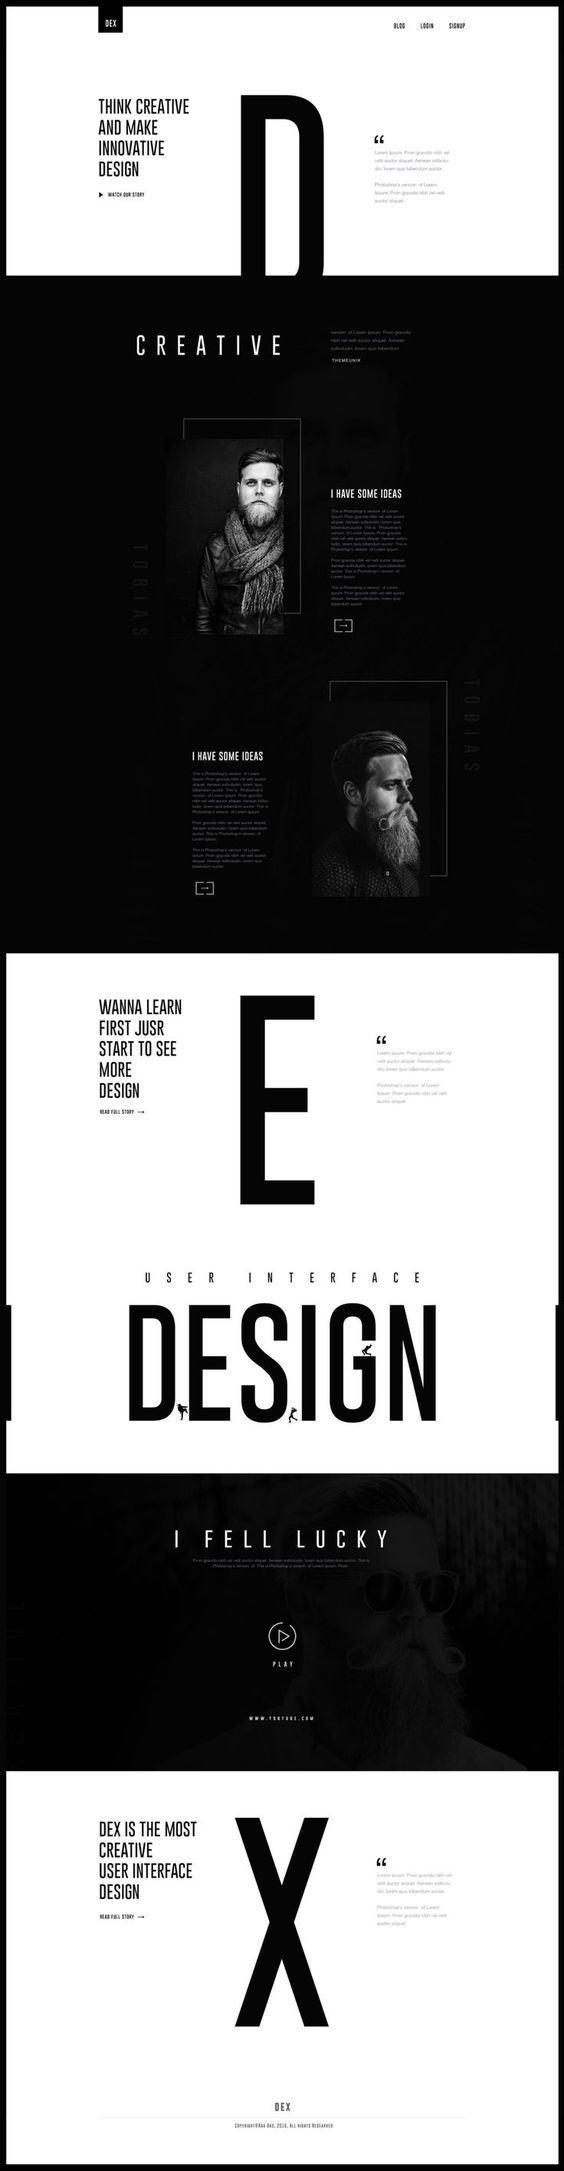 (19) Website design from http://keithhoffart.weebly.com/contact.html?utm_content=bufferf8908&utm_medium=social&utm_source=pinterest.com&utm_campaign=buffer Black on White Design Trend. If you're a user experience professional, listen to Th…   Pinterest